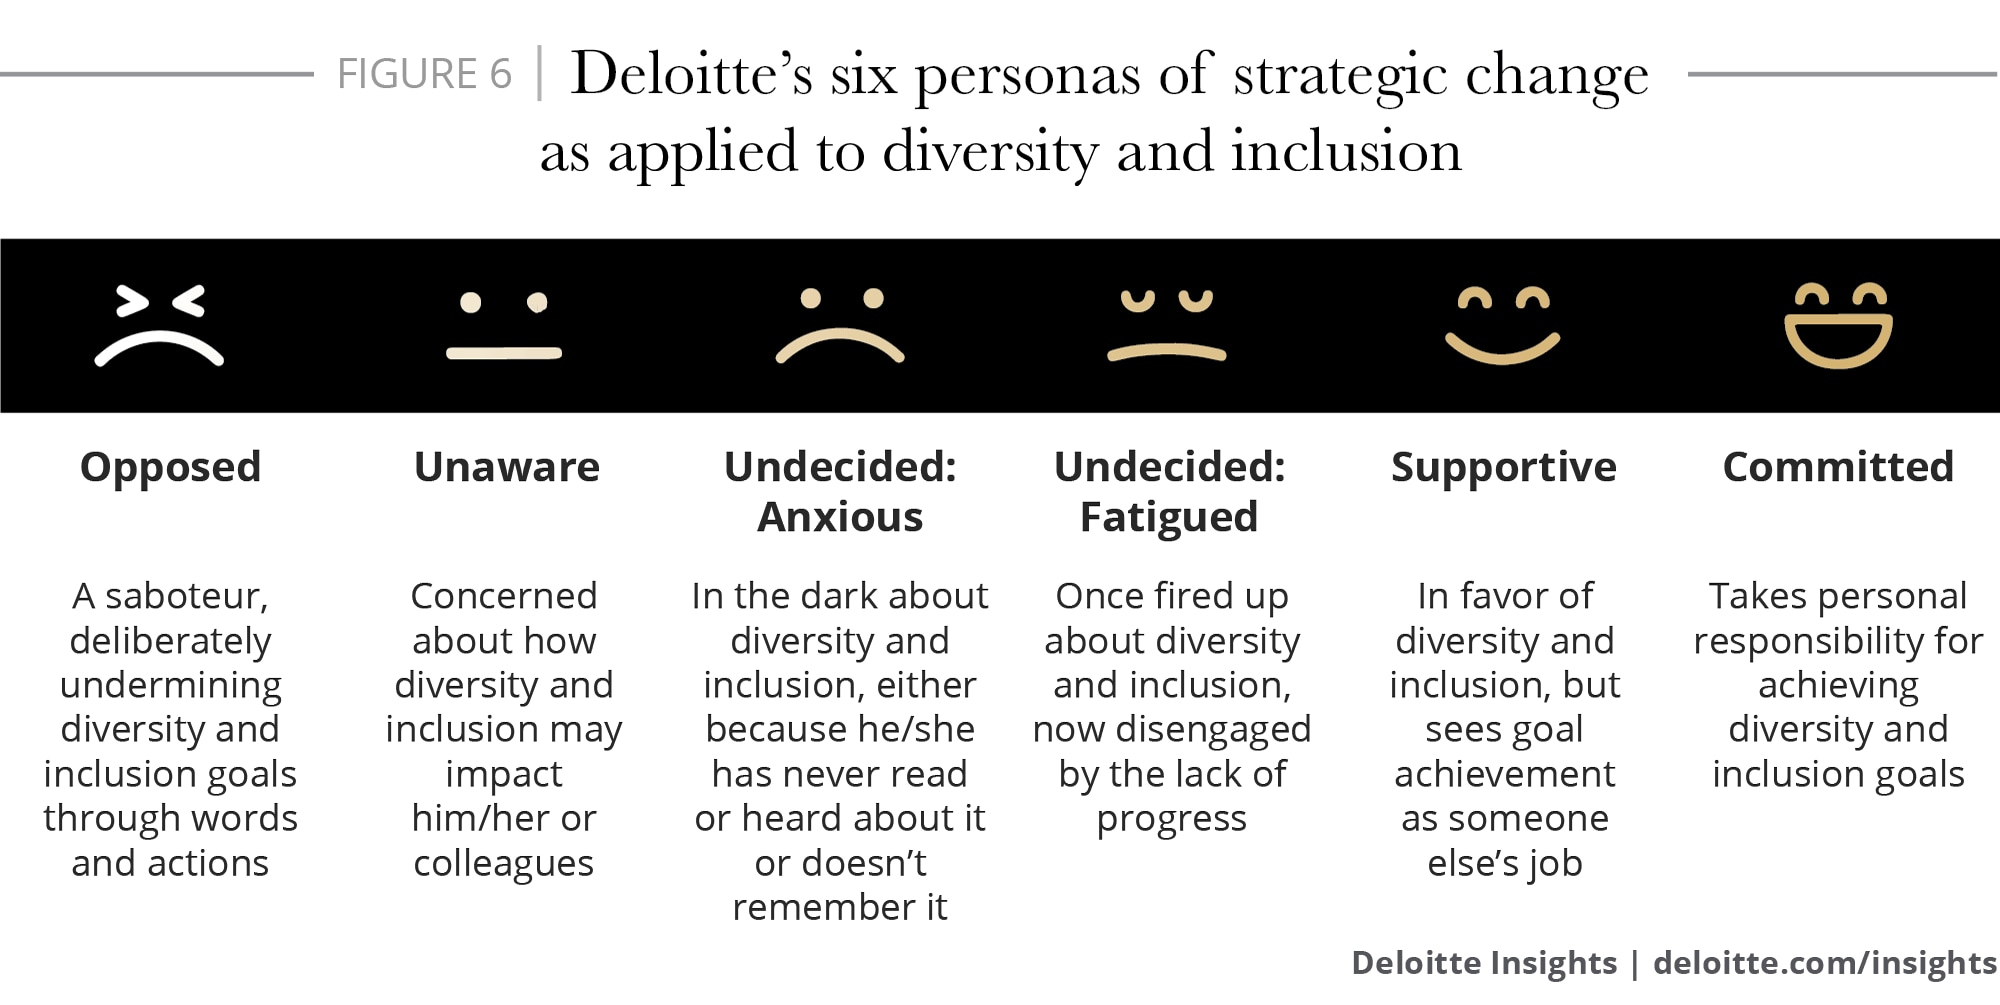 Deloitte's six personas of strategic change as applied to diversity and inclusion